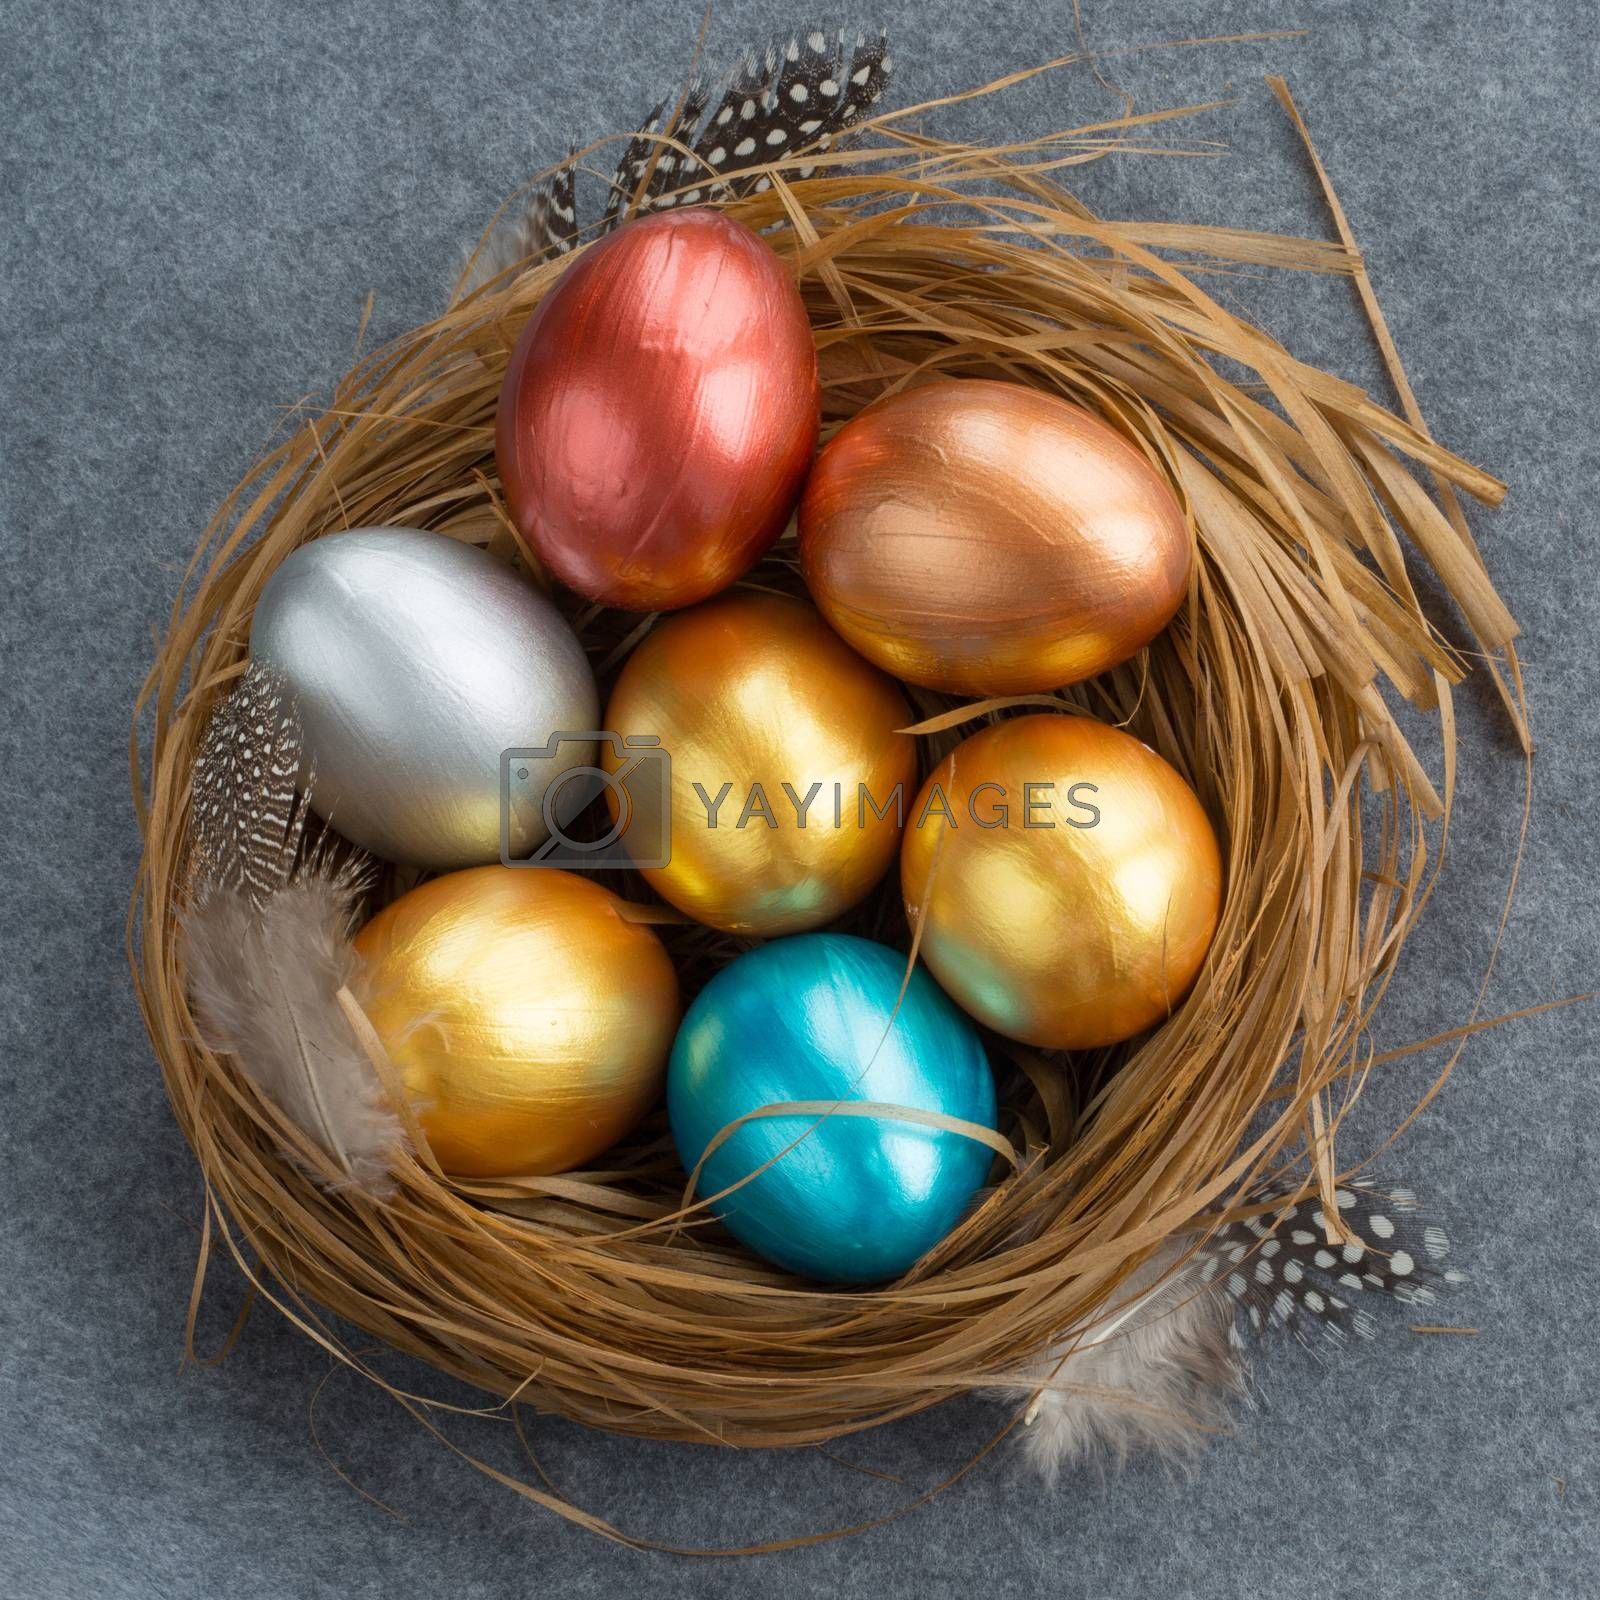 Happy Easter holiday greeting symbol stylish natural wooden grass nest with colorful quail eggs and feathers on gray fabric background